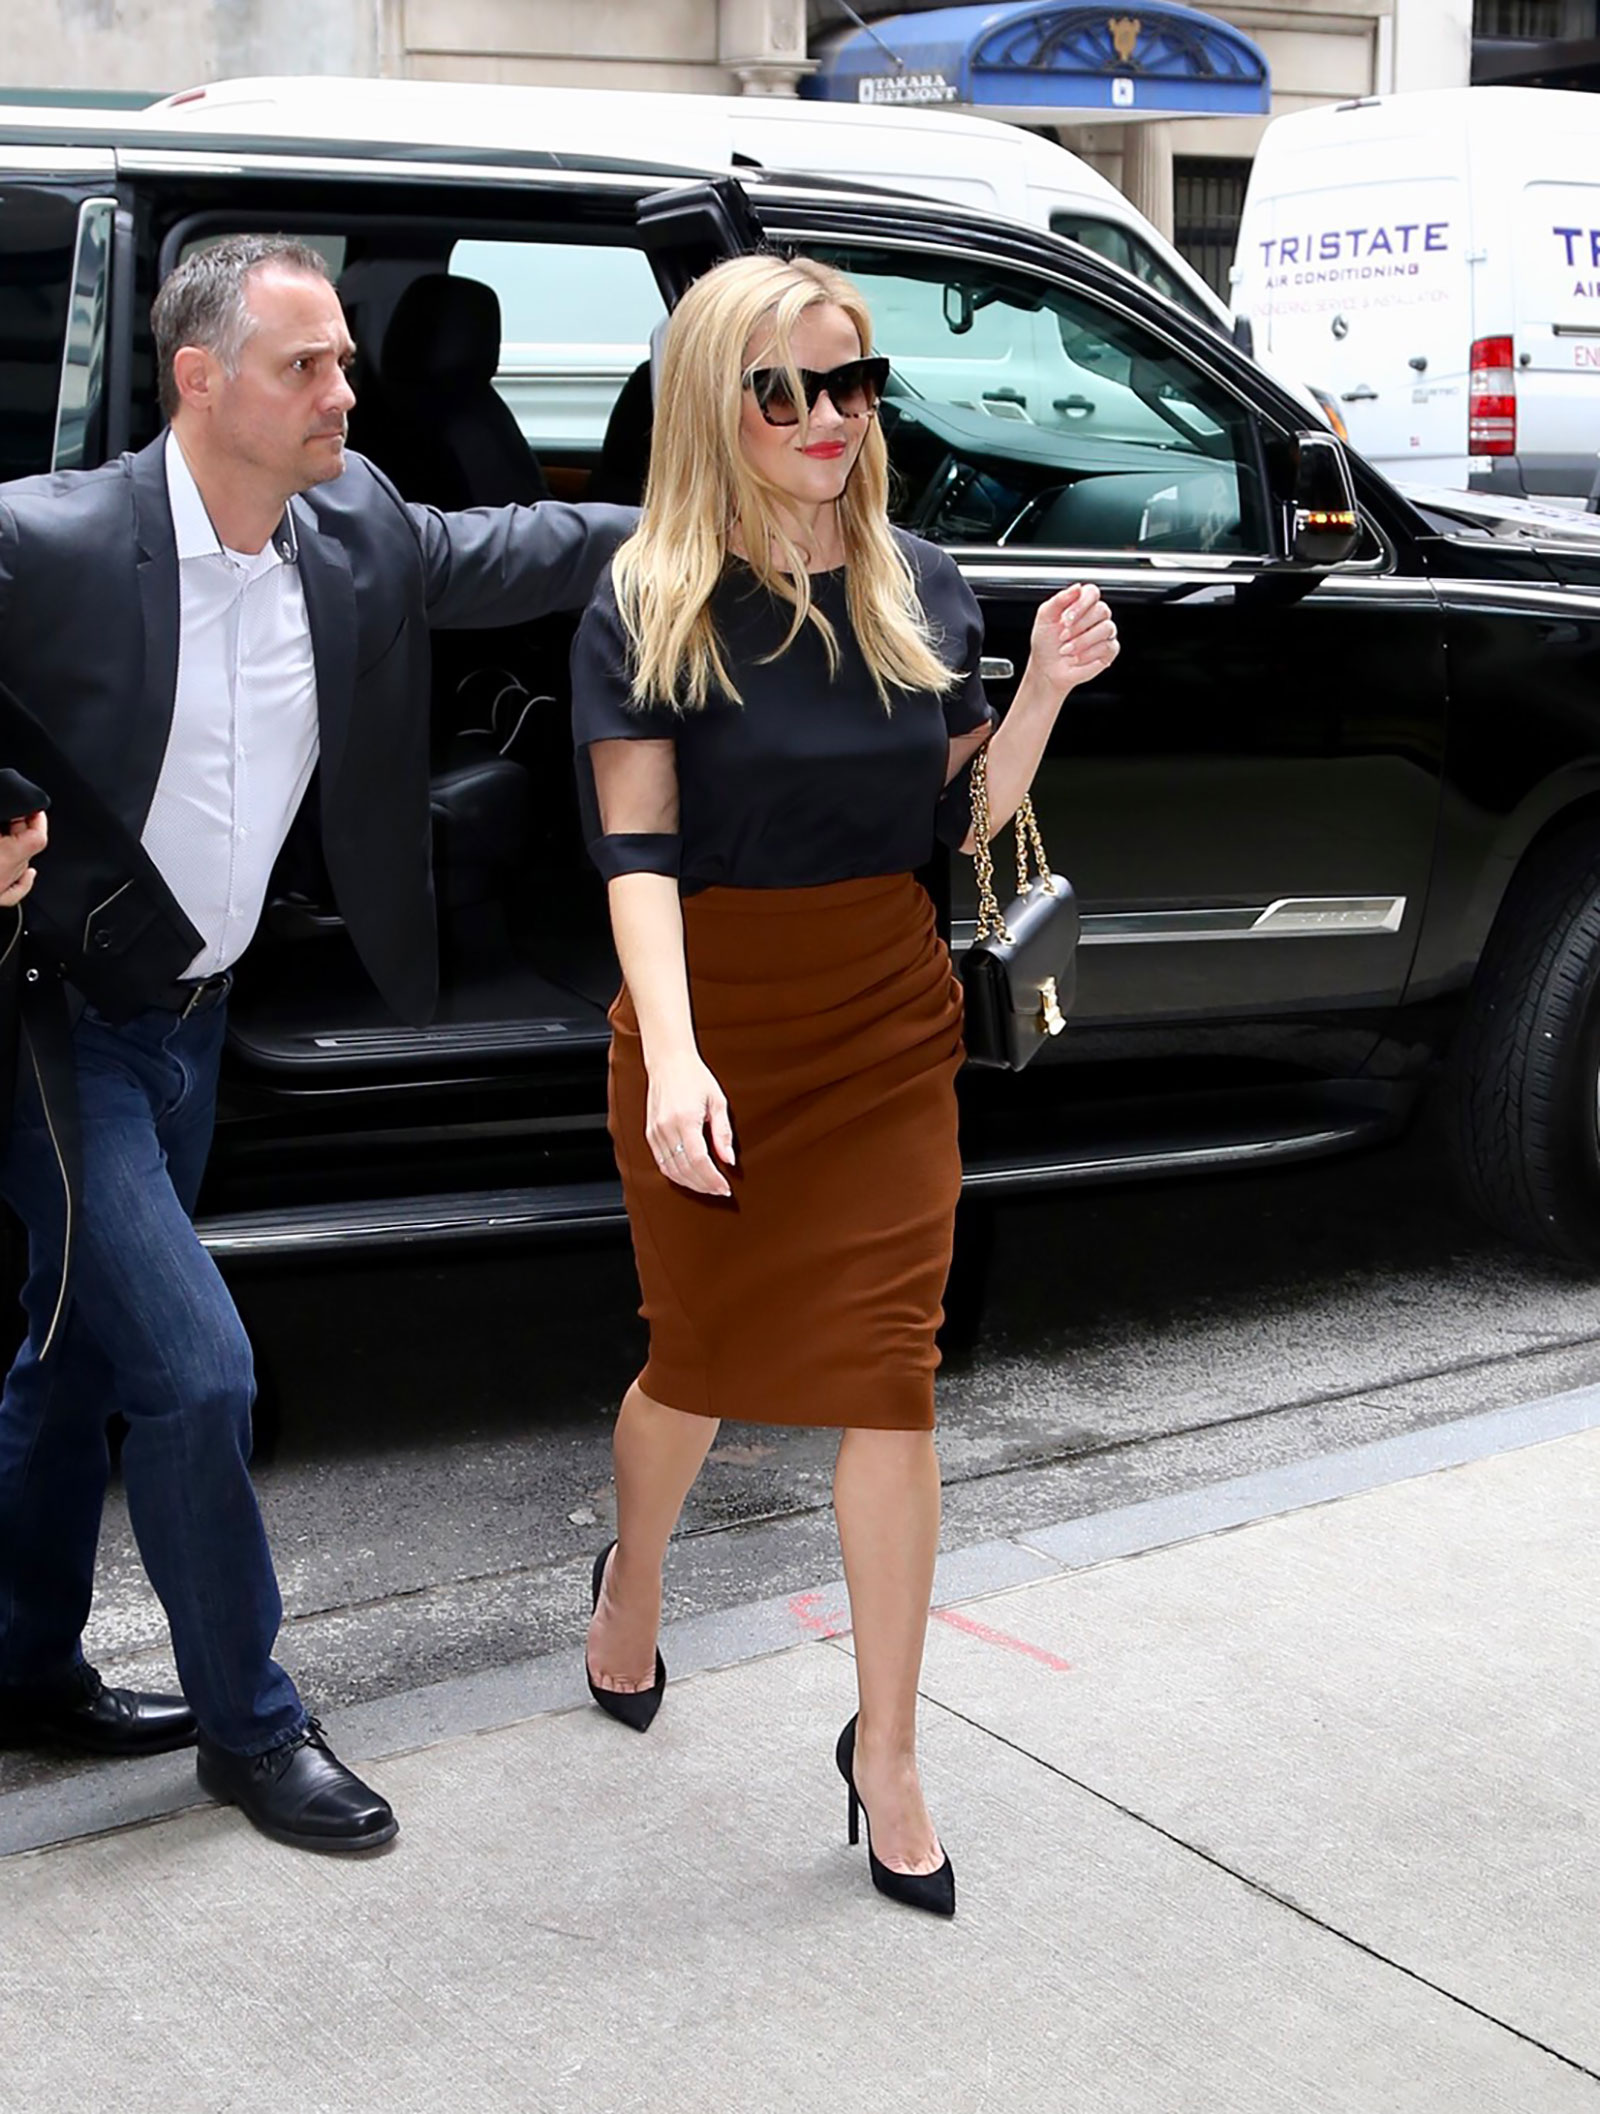 Reese Witherspoon's orange skirt and black top with mesh panels